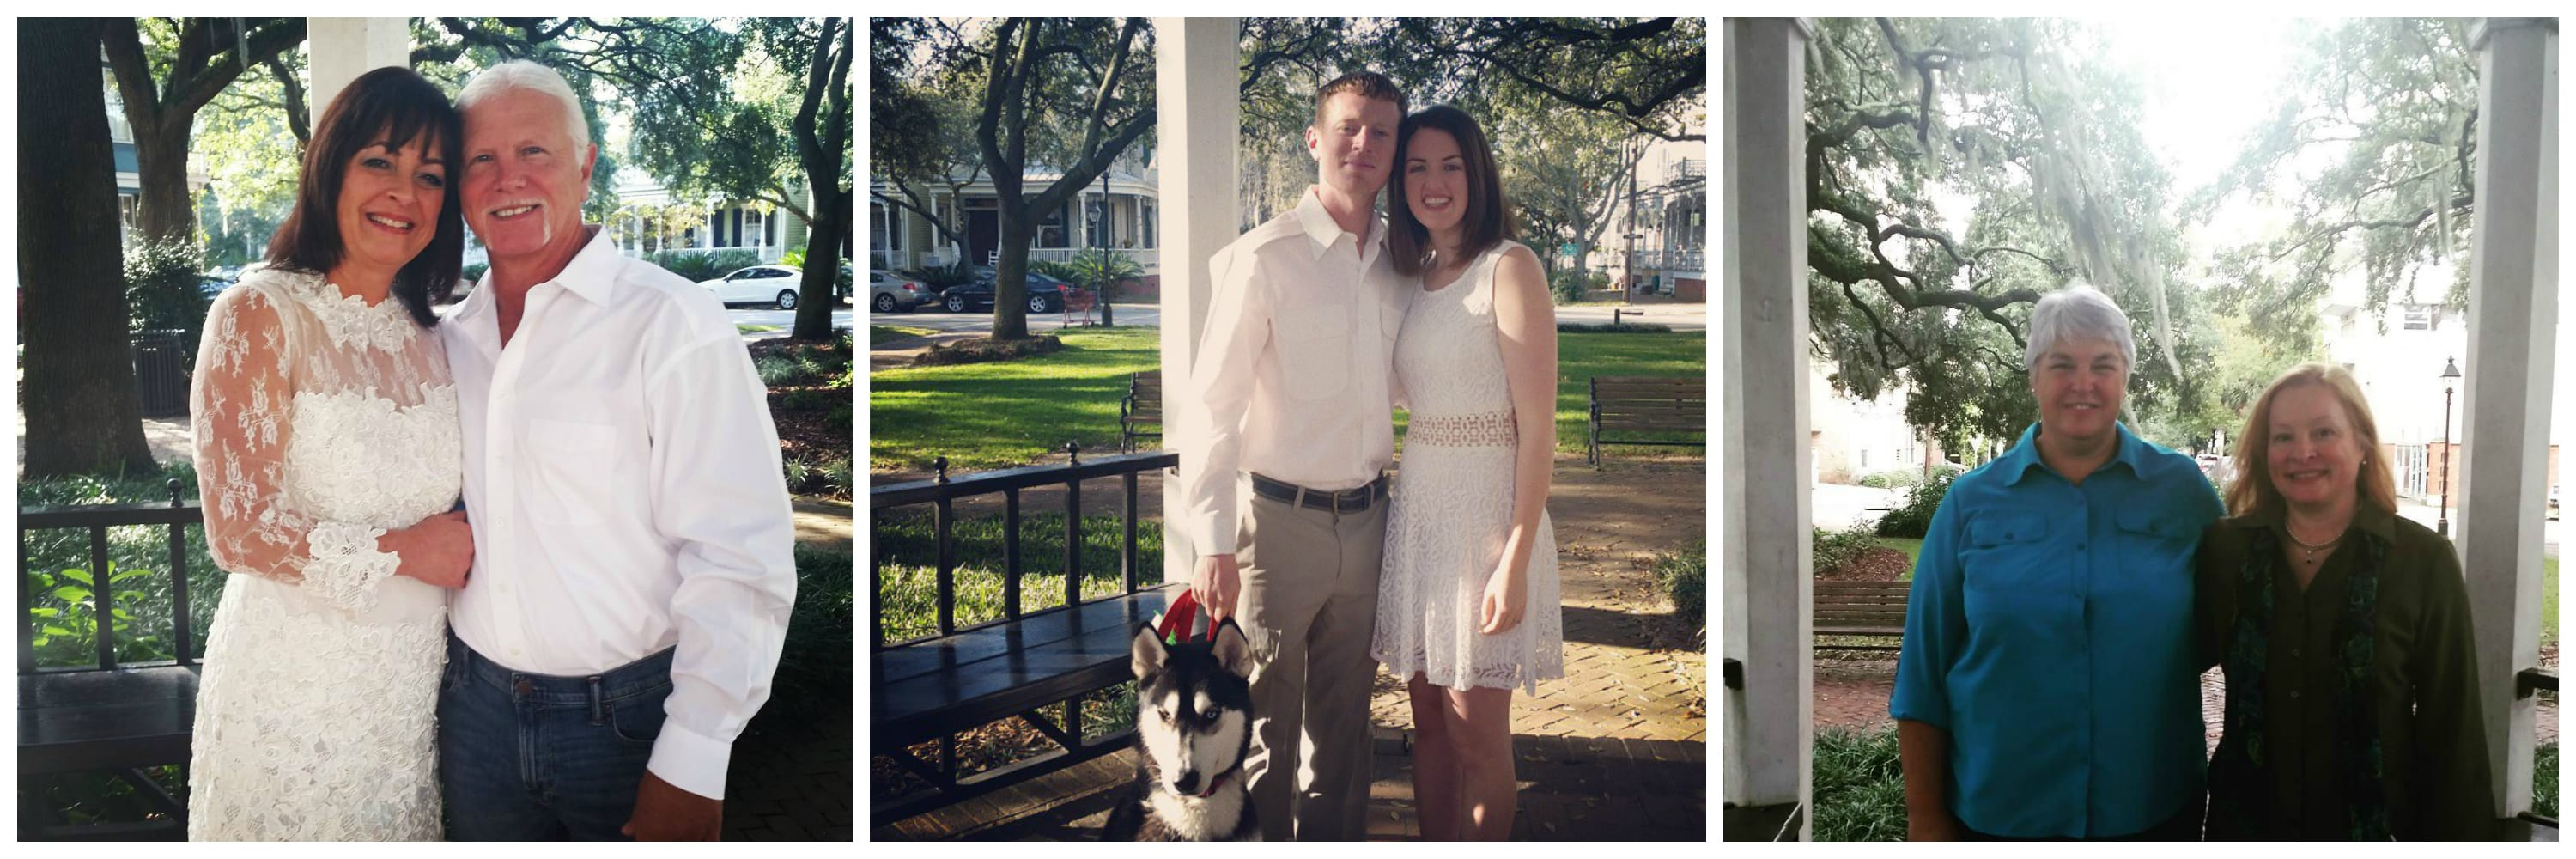 Elopements in Whitfield Square in Savannah GA